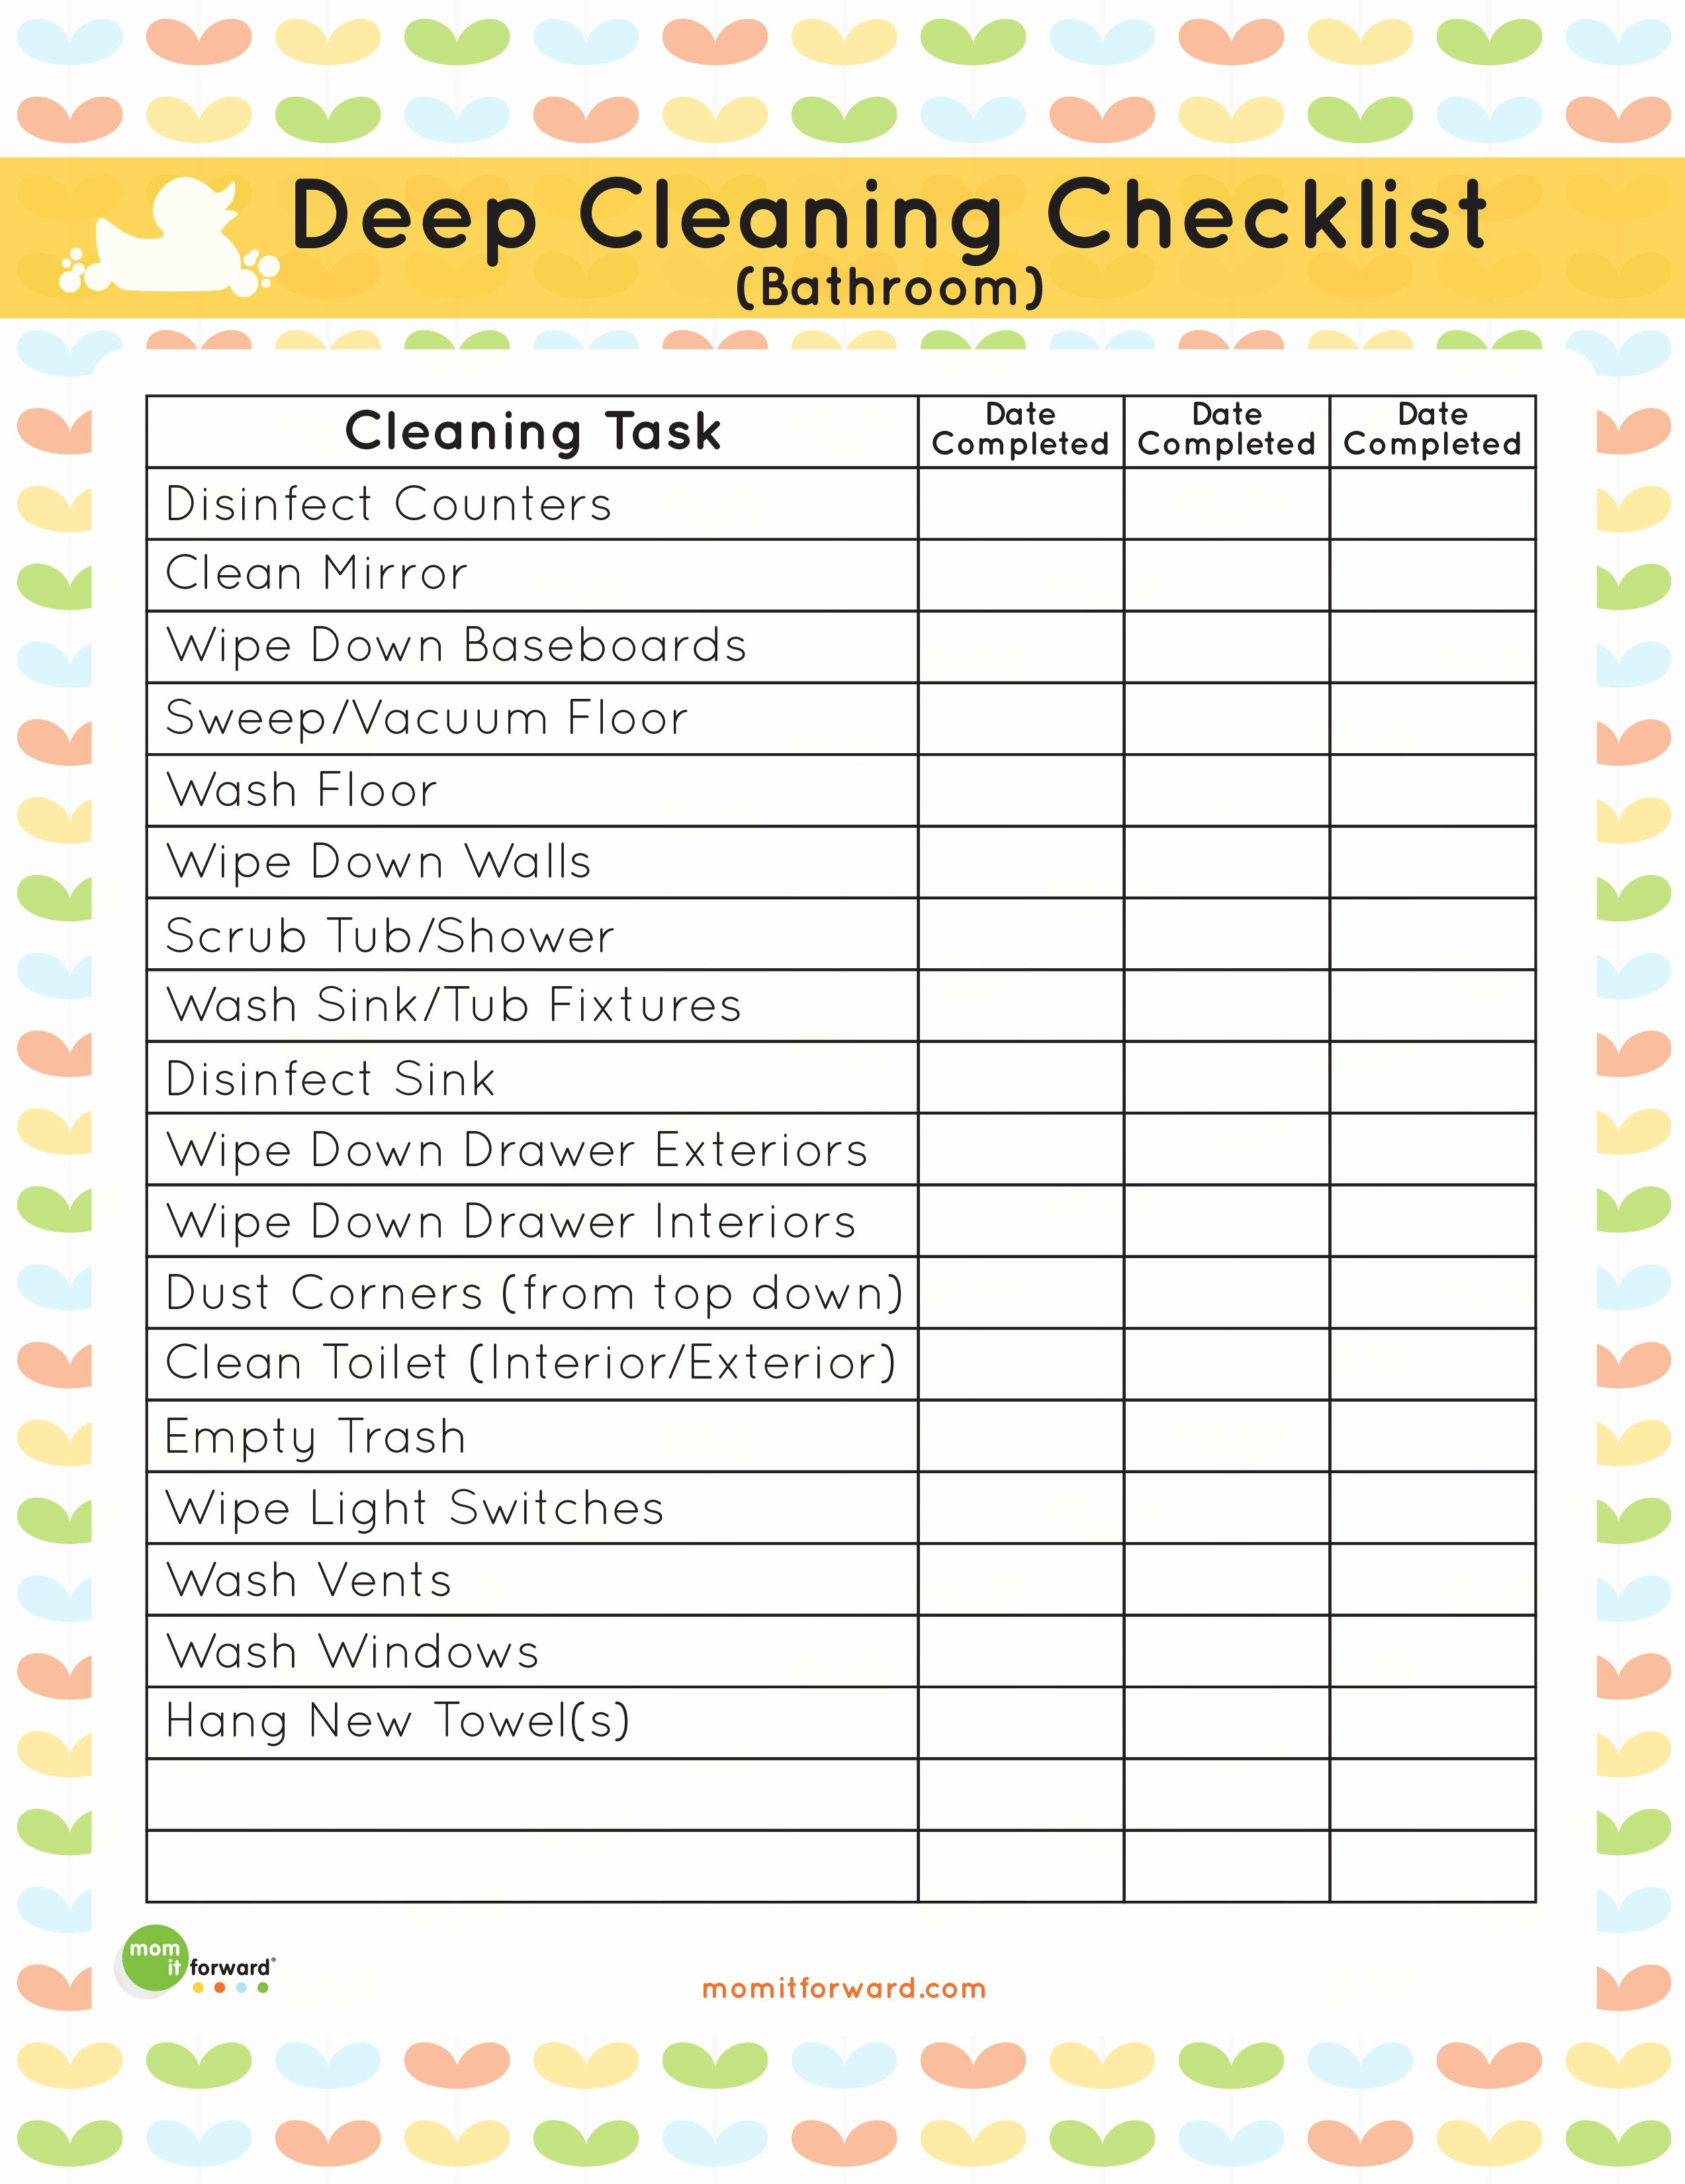 Preschool Cleaning Checklist Template Unique Printable Bathroom Deep Cleaning List Mom It forwardmom